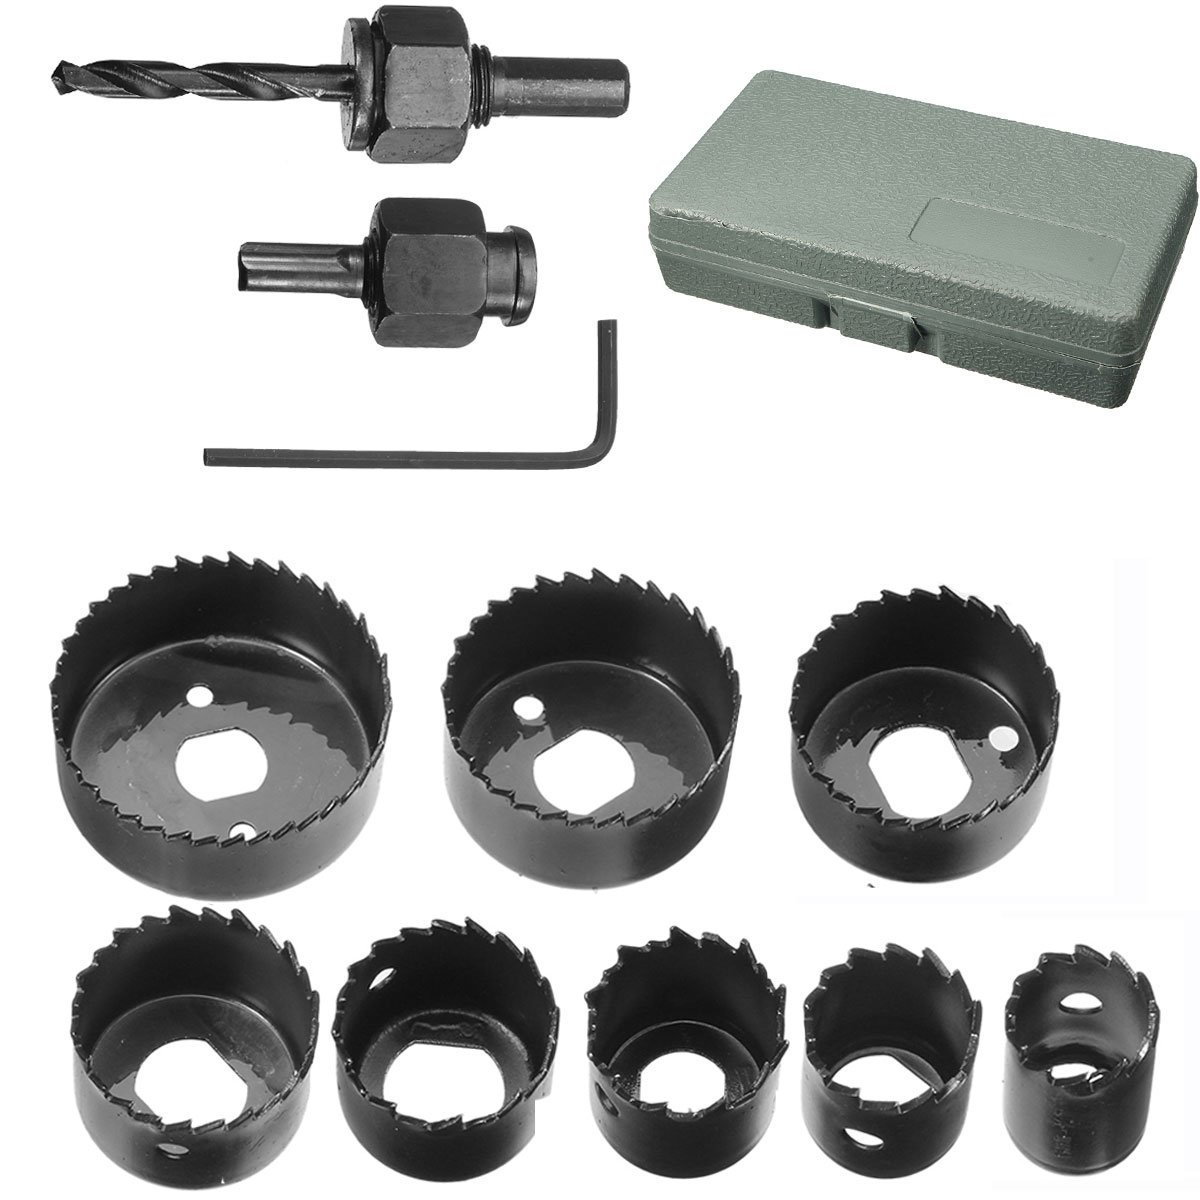 Hole Saw Set, Drillpro 11 PCS Hole Saw Kit 3/4'' - 2 1/2 ''inch for Woodworking